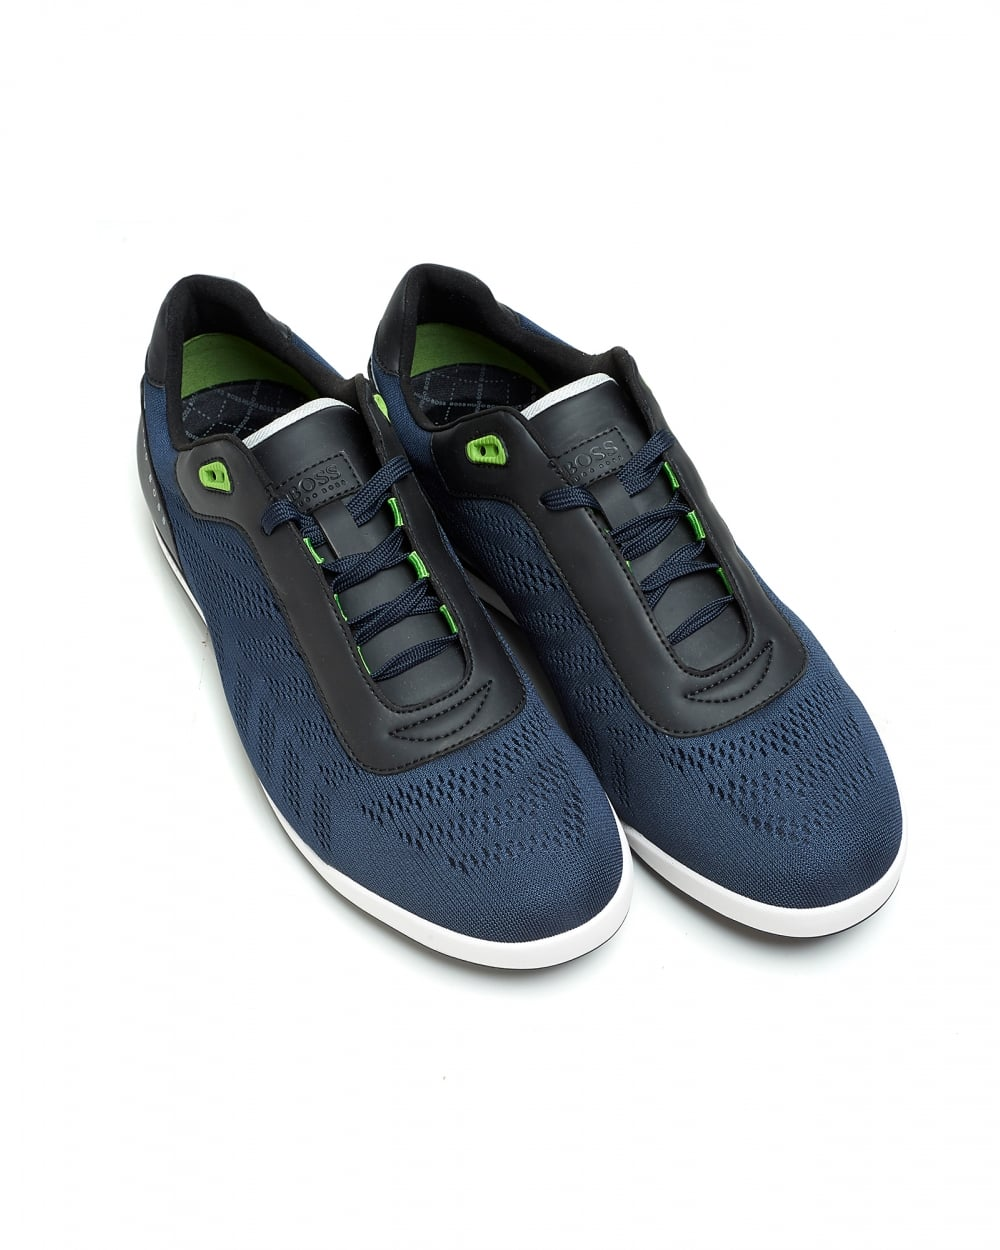 hugo boss green arkansas lowp mxme low top dark blue trainers. Black Bedroom Furniture Sets. Home Design Ideas